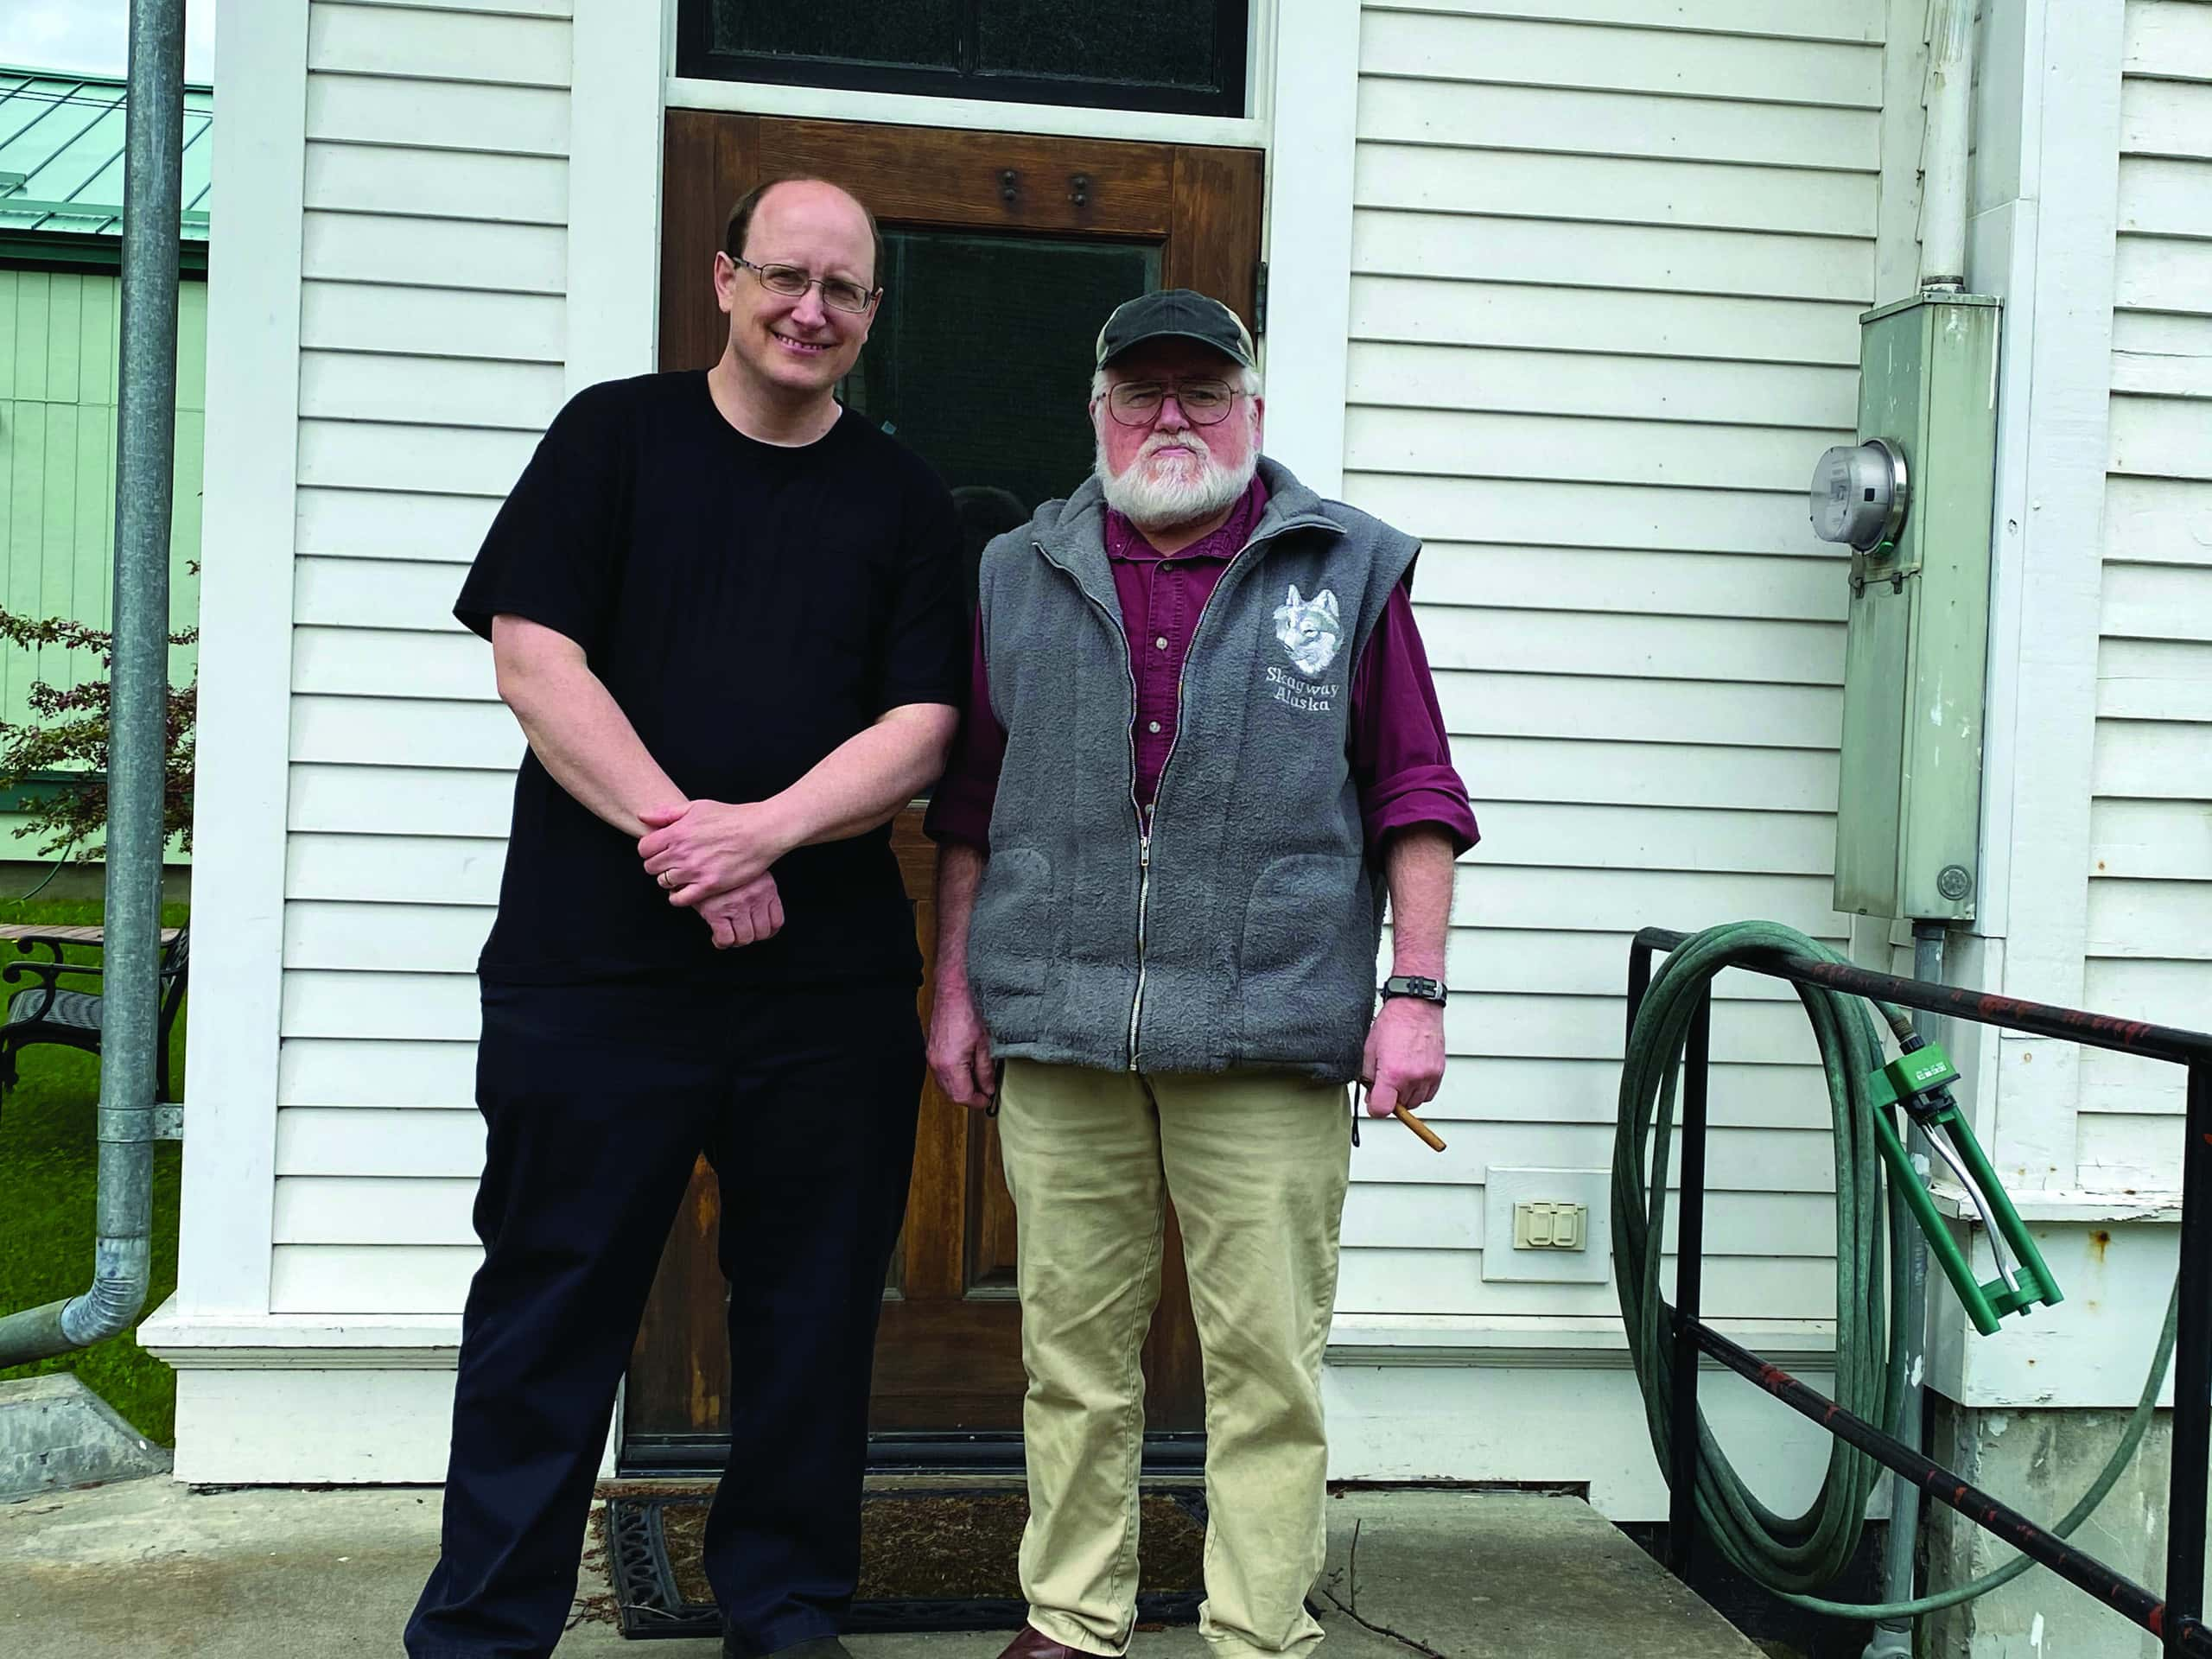 Senior Services welcomes new manager, restarts in-person meals